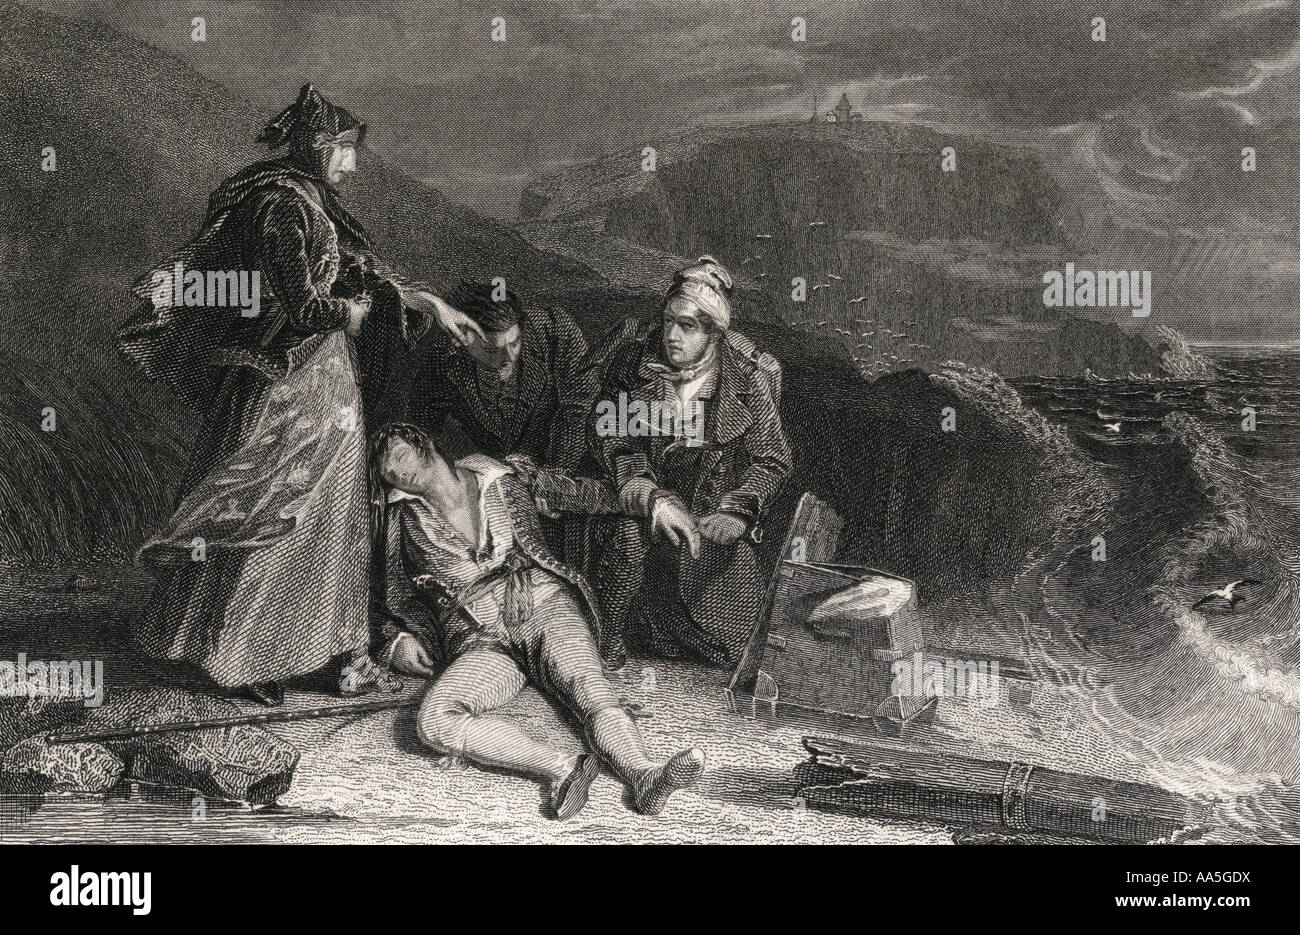 Steel engraving by G Presbury from a drawing by A Chisolm of Cleveland s rescue from Scott s novel The Pirate - Stock Image